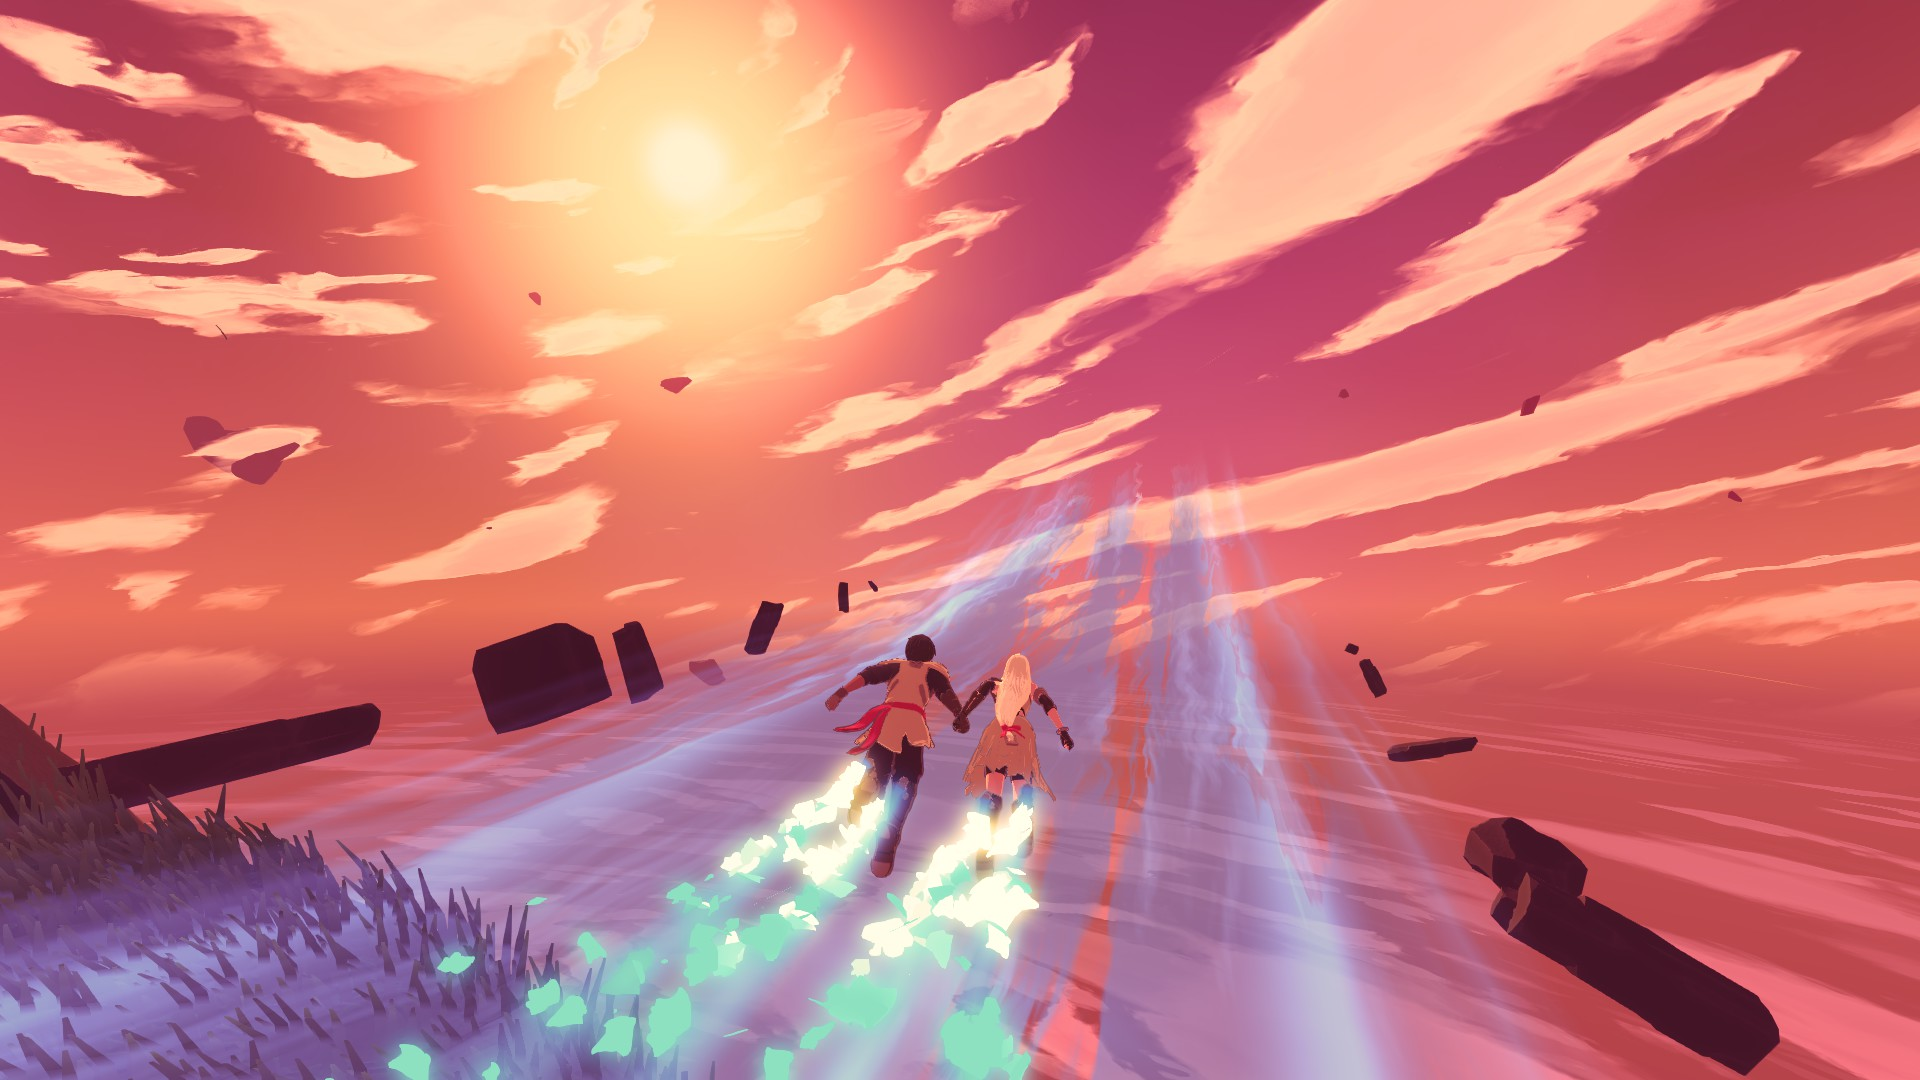 Yu and Kay hold hands and race into a beautiful orange sky on what looks like a wide blue river of flow energy.